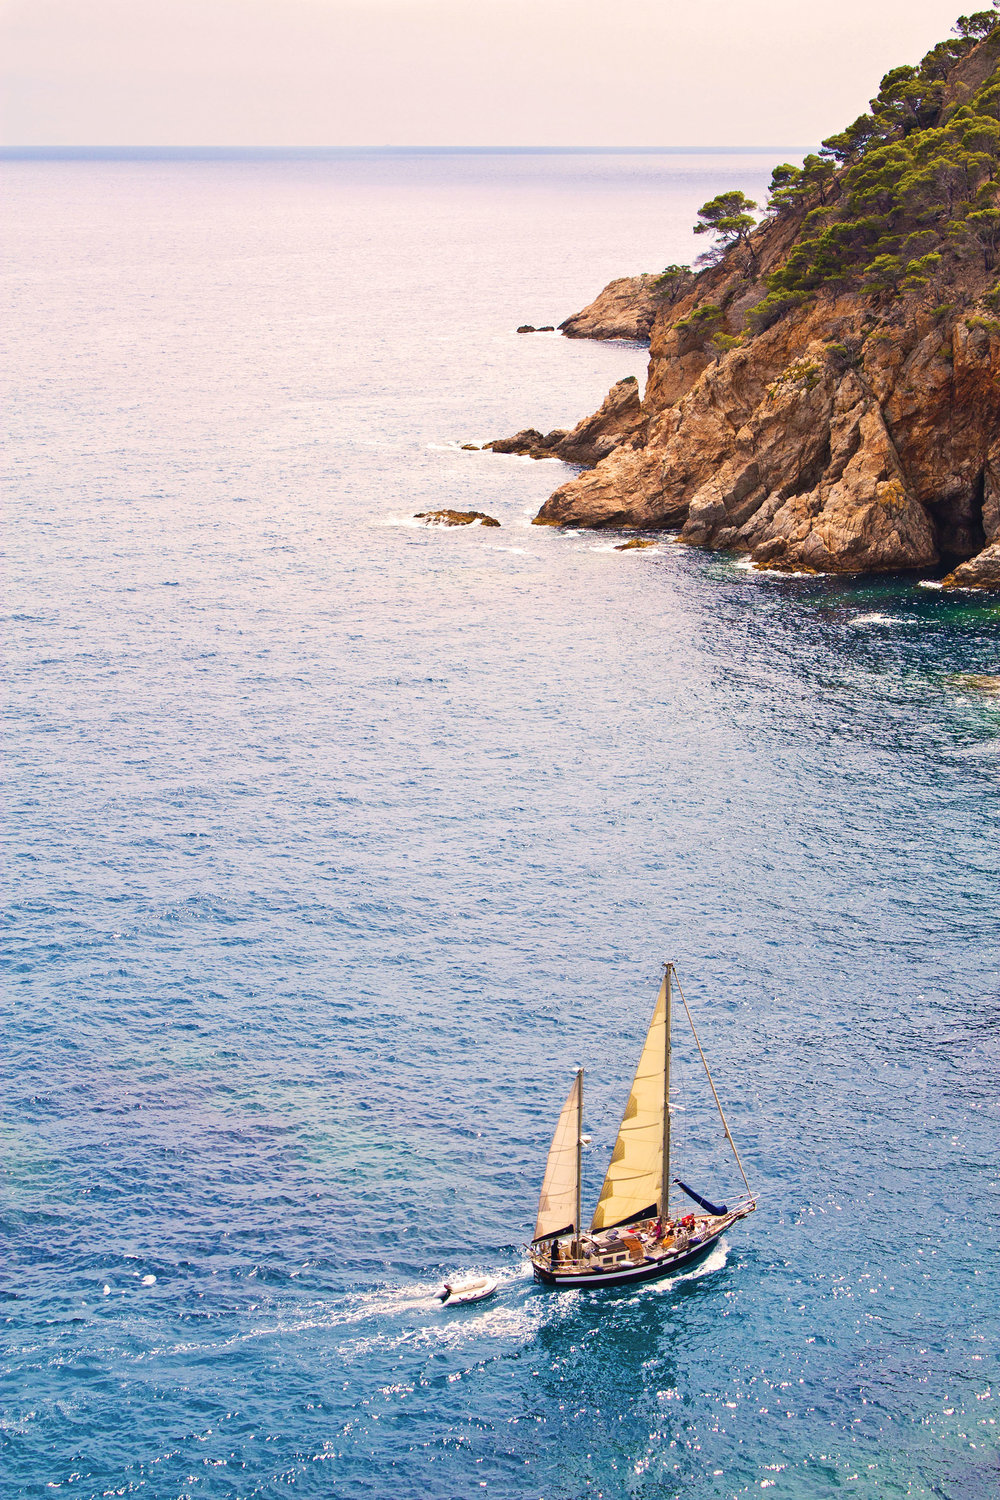 With miles of shoreline and a calm Mediterranean, sailing is the perfect adventure for any trip to Barcelona. Marques / Shutterstock.com